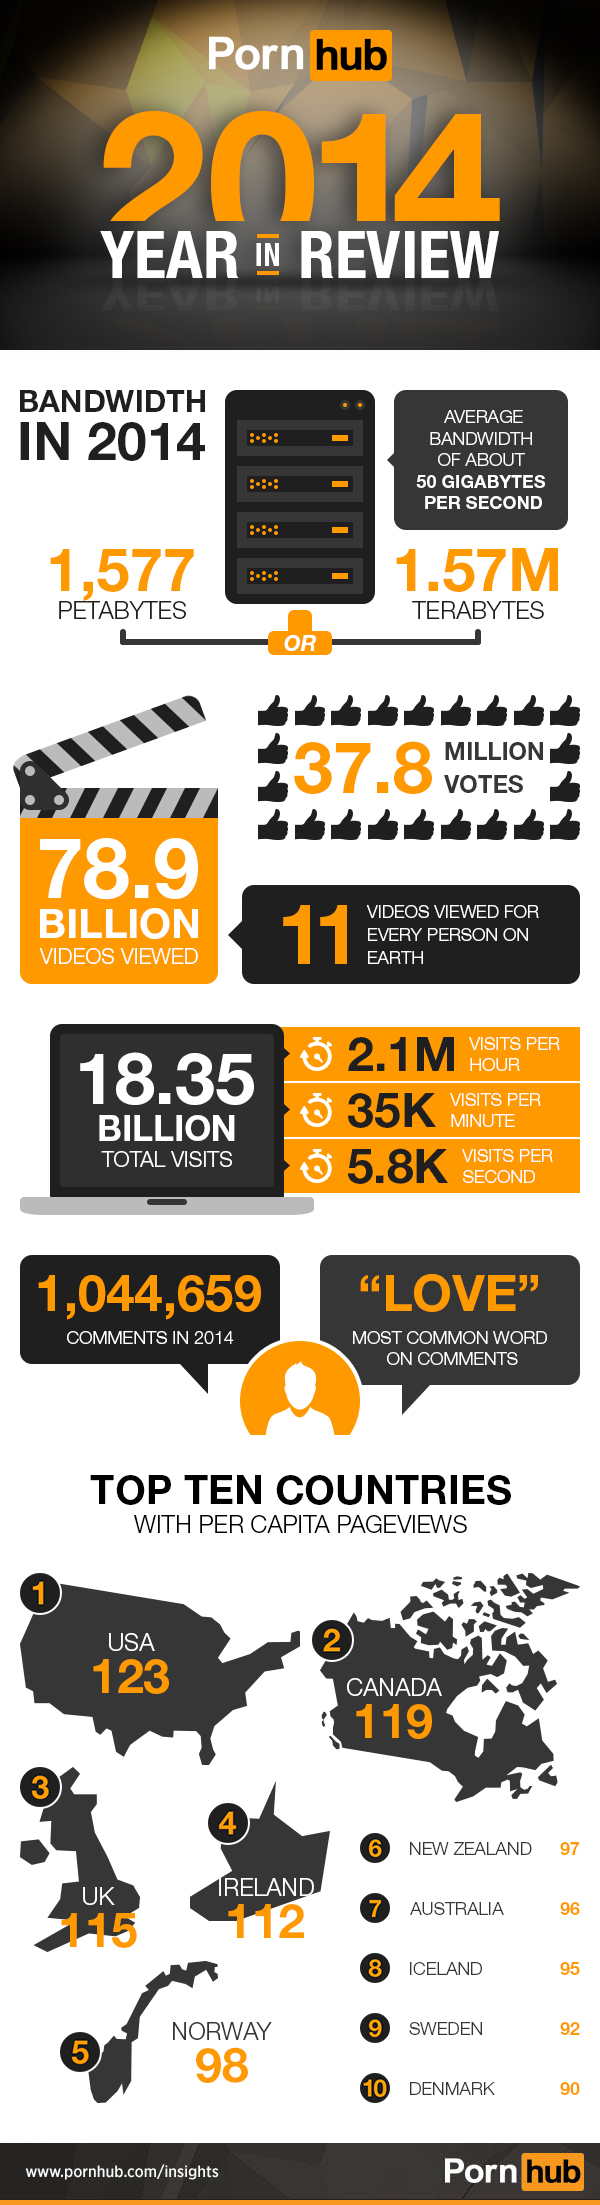 2-pornhub-2014-year-in-review-stats